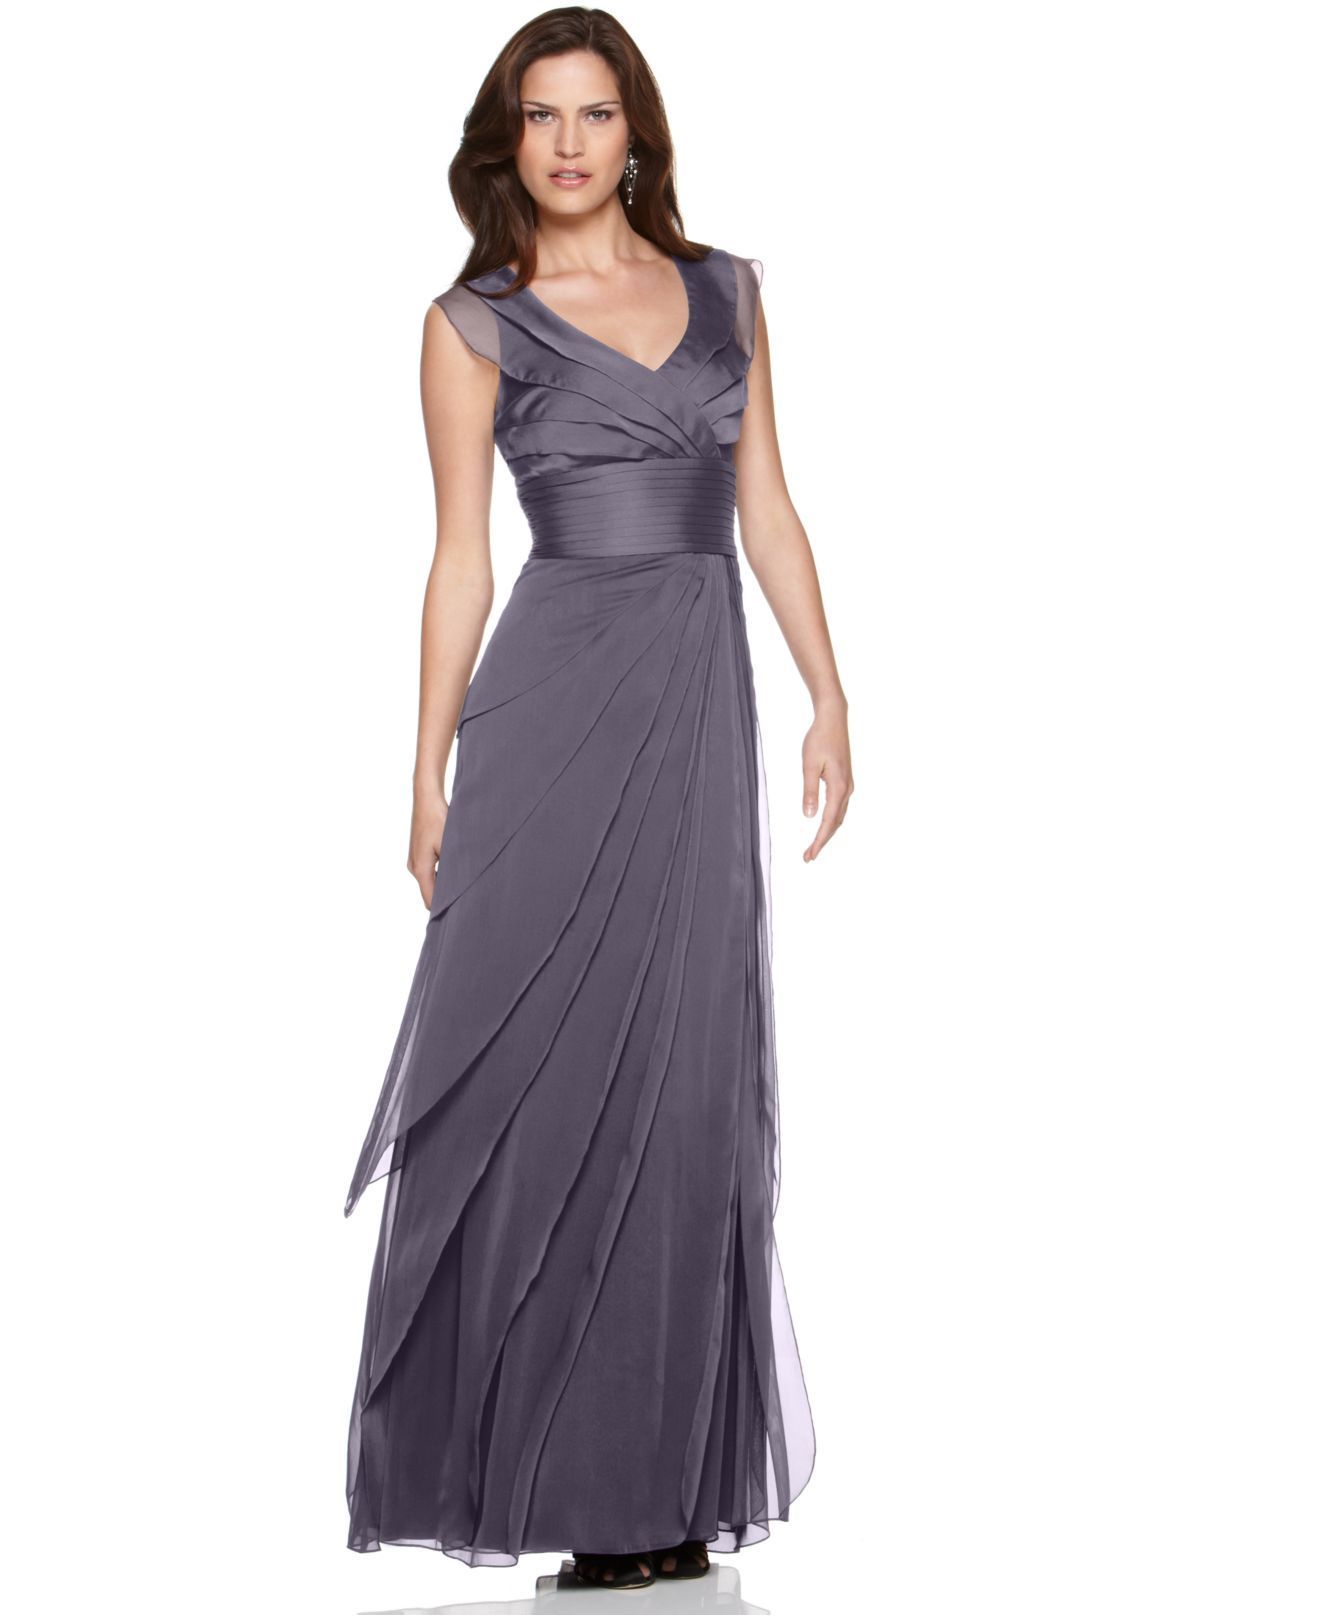 Adrianna papell dress tiered evening dress womens for Wedding dresses for womens